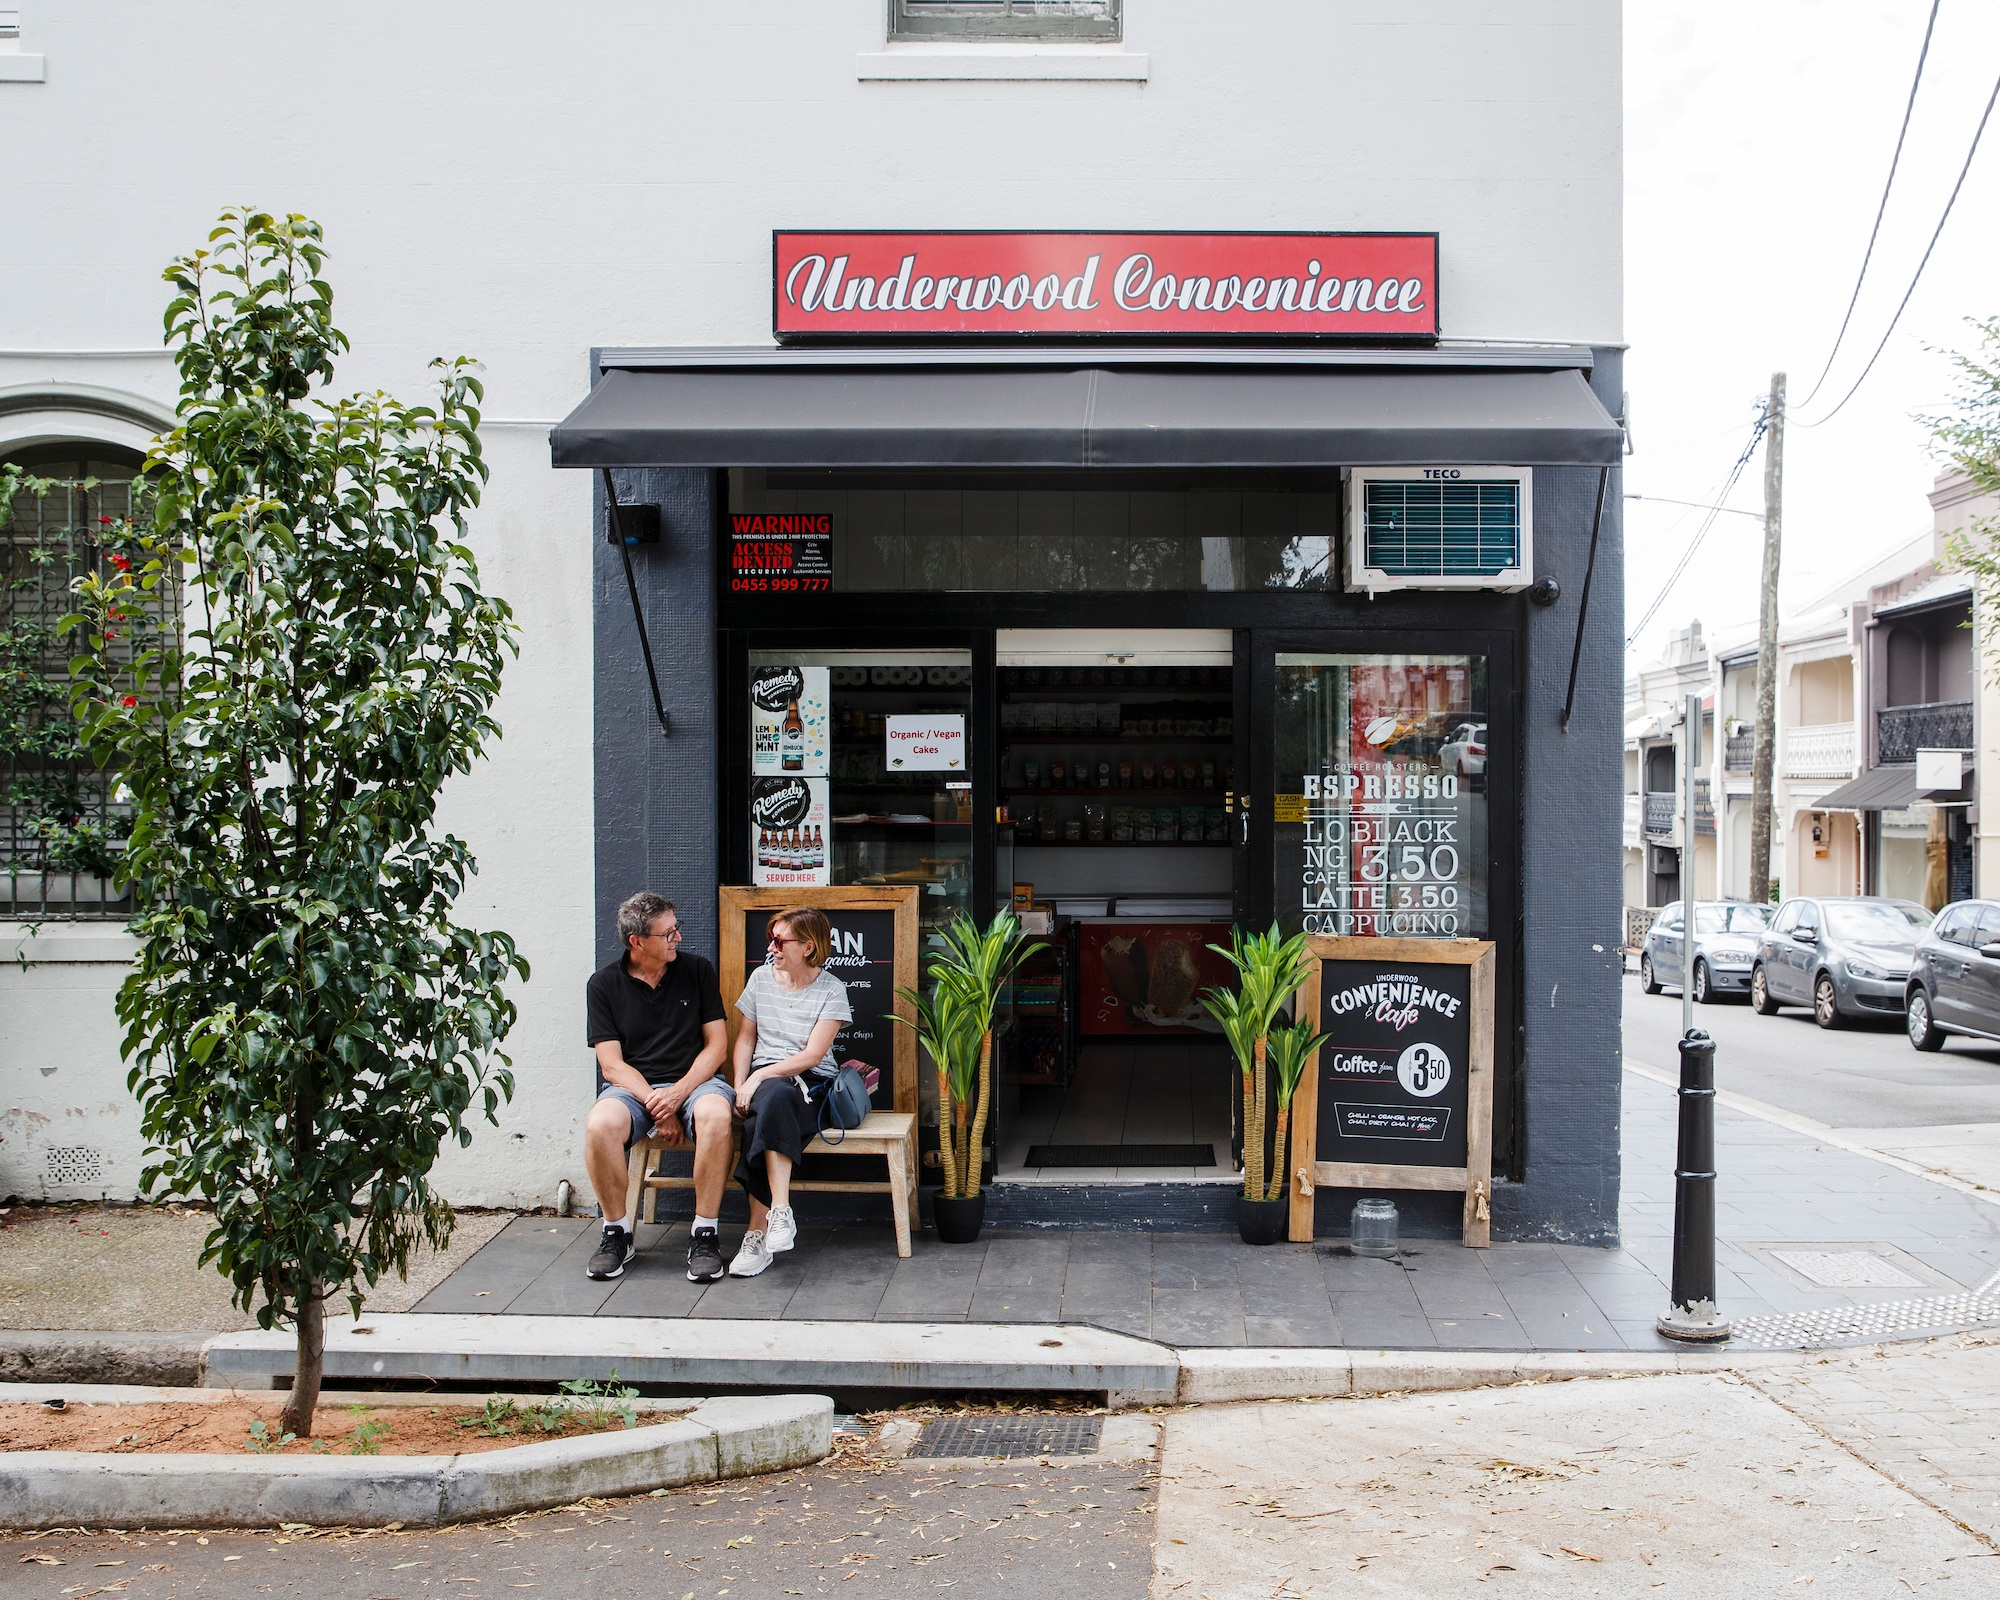 UNDERWOOD CAFE & CONVENIENCE - 83 UNDERWOOD STREET